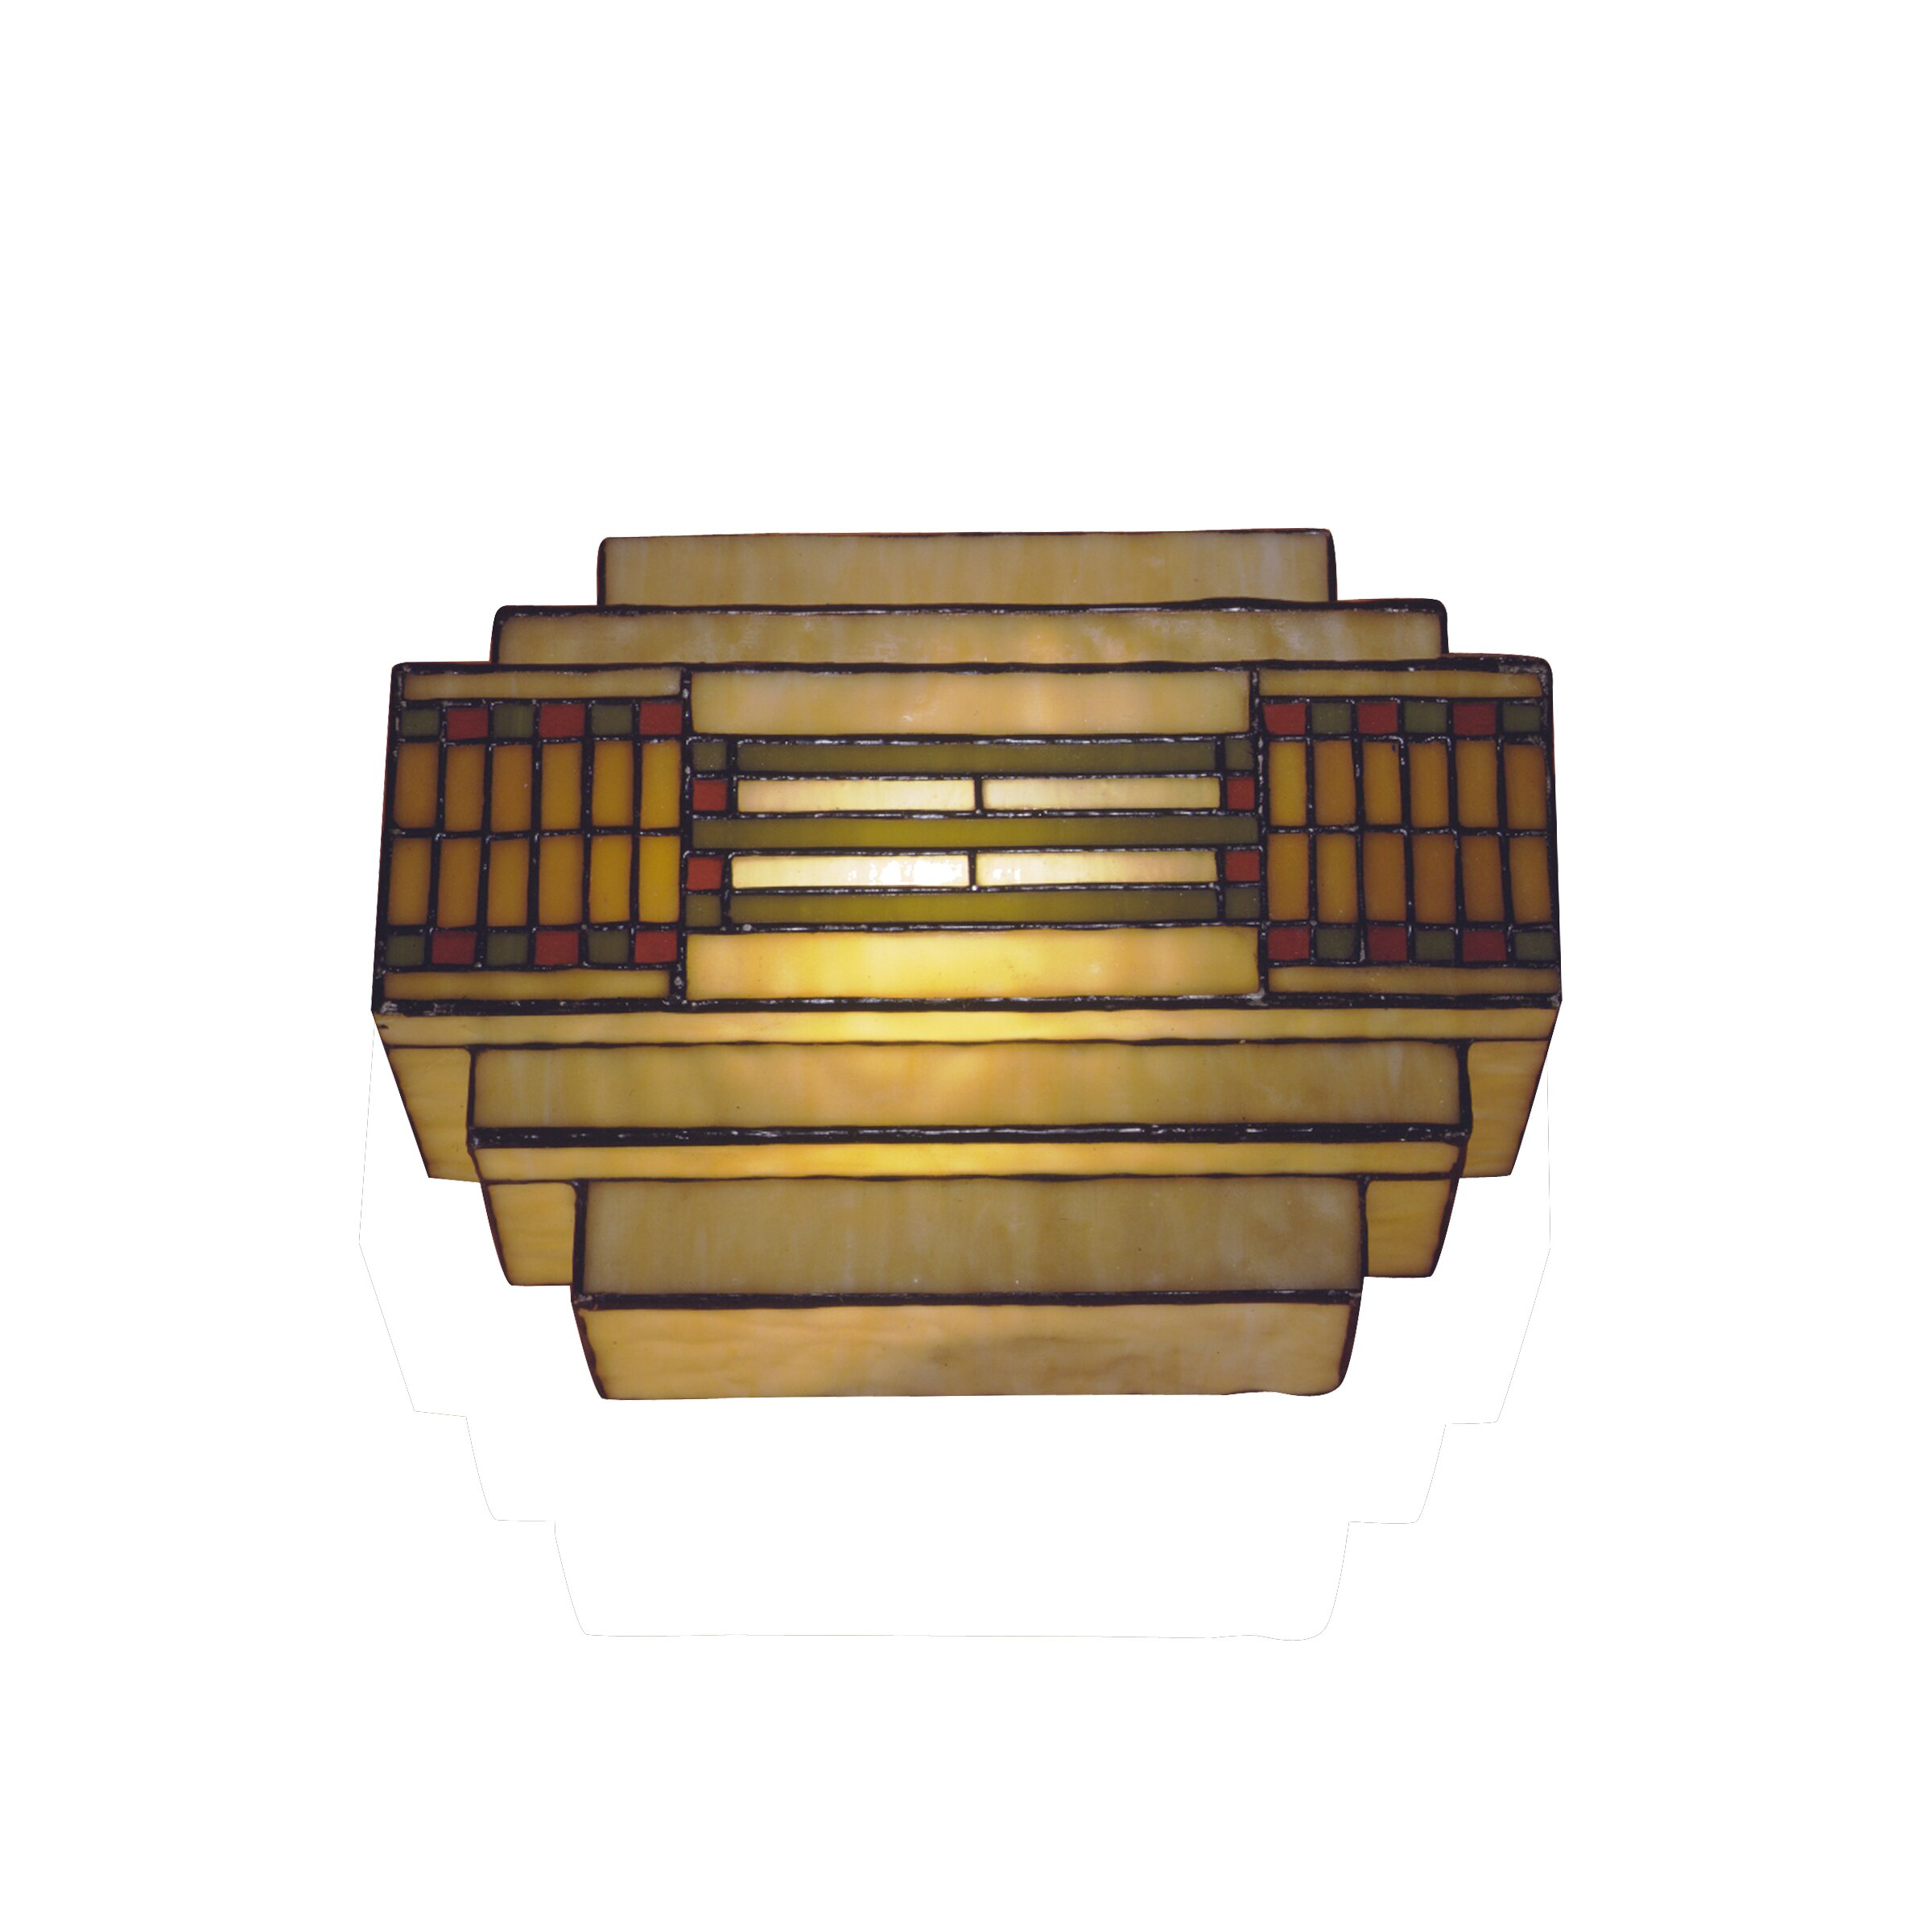 Mission Tiffany Wall Sconces: Dale Tiffany Mission/Prairie Series 1 Light Wall Sconce